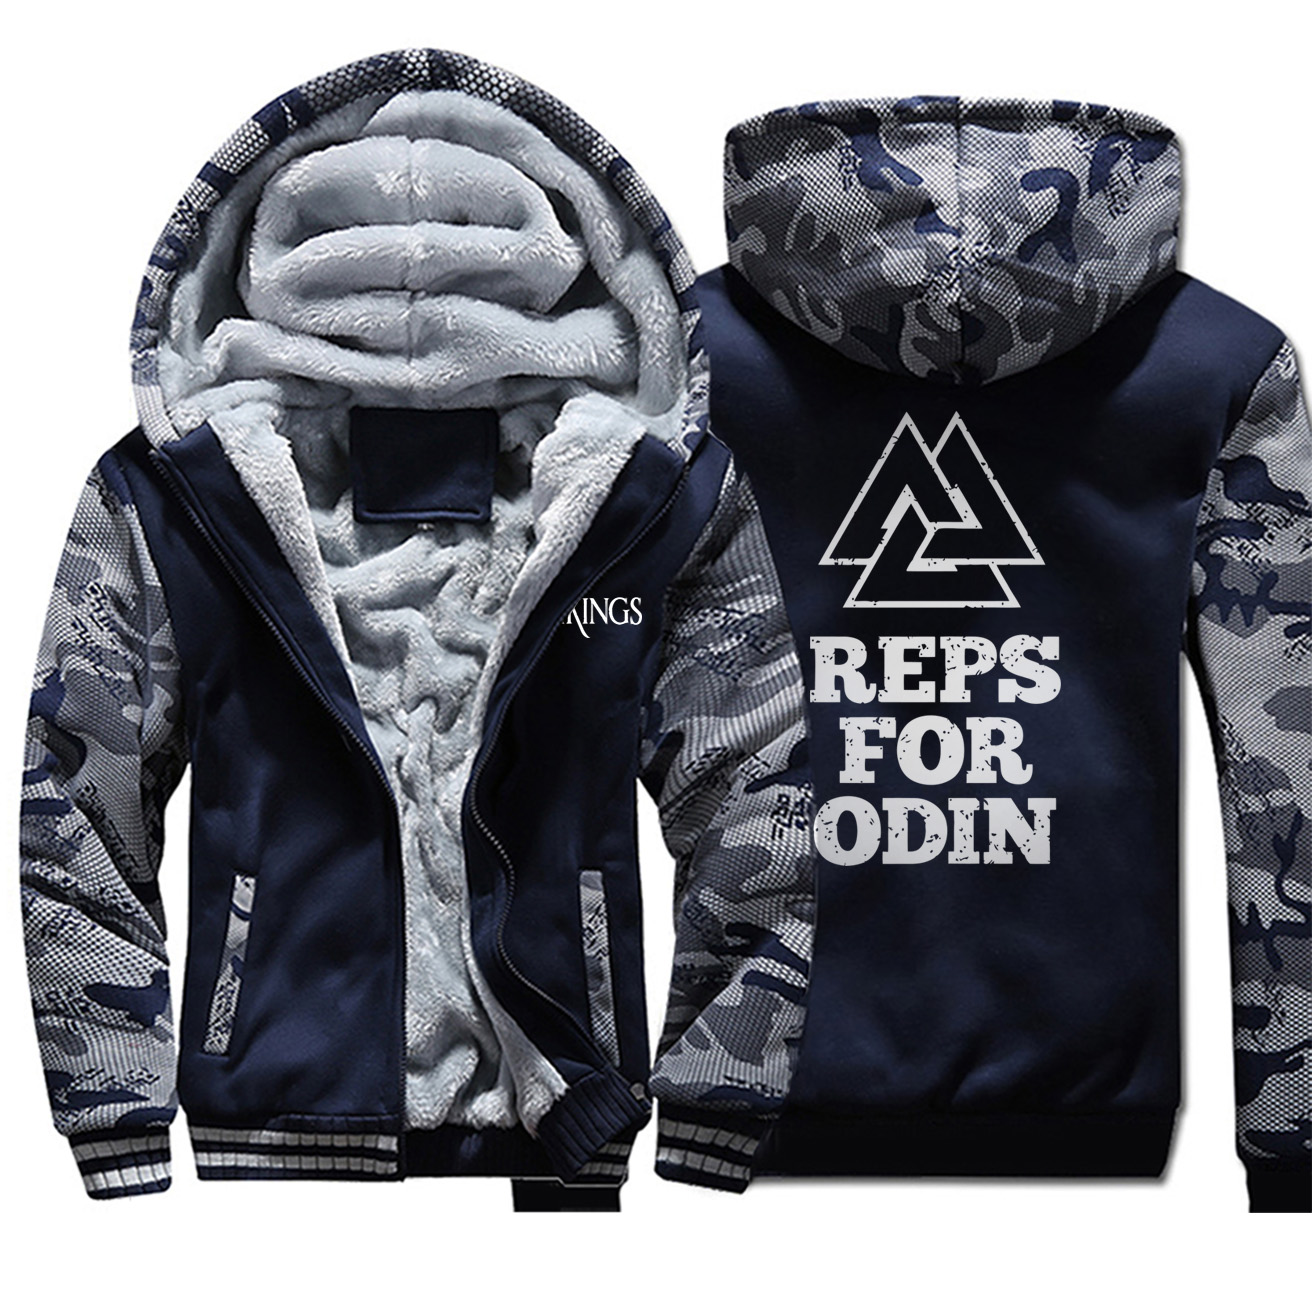 Vikings Jackets Men Reps For Odin Hoodies Valhalla Sweatshirt Winter Thick Feece Zipper Coats Sons Of Anarchy Camouflage Outwear